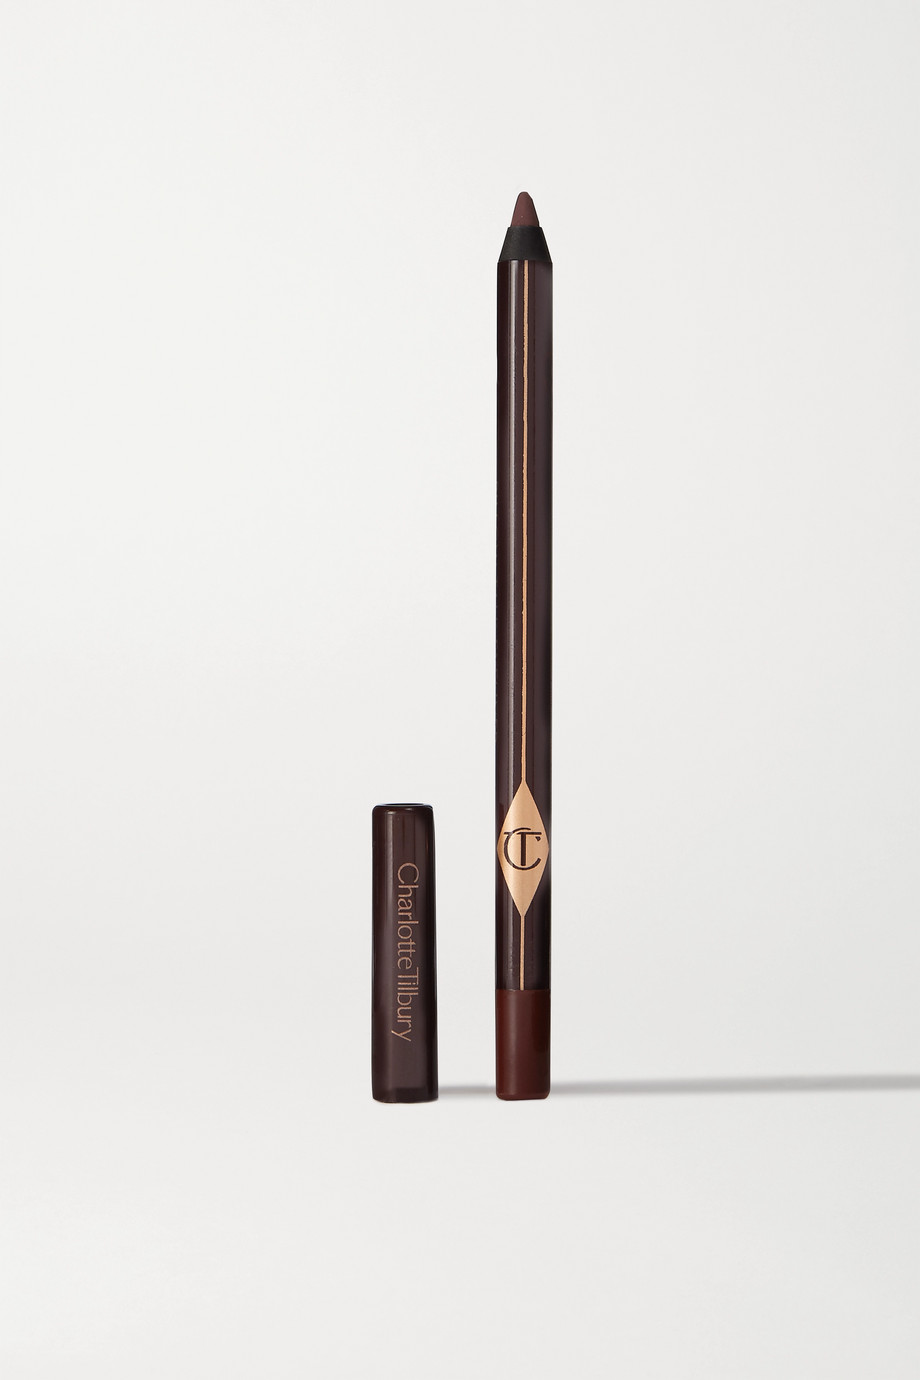 Charlotte Tilbury Eyeliner - Pillow Talk